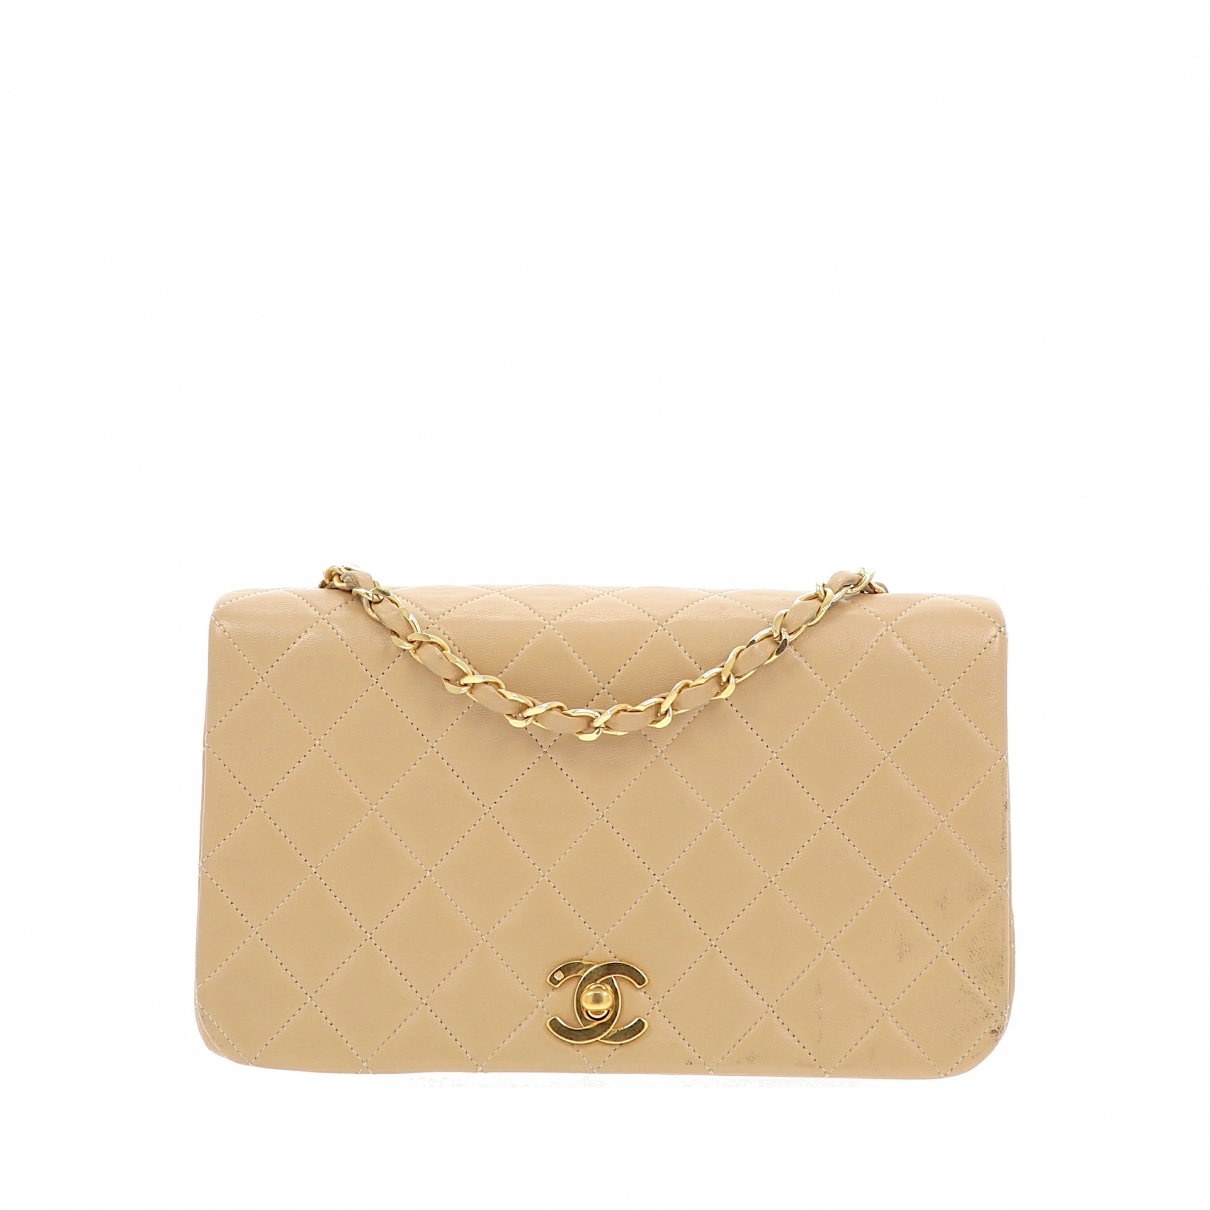 Chanel Timeless/Classique Beige Leather Clutch bag for Women \N